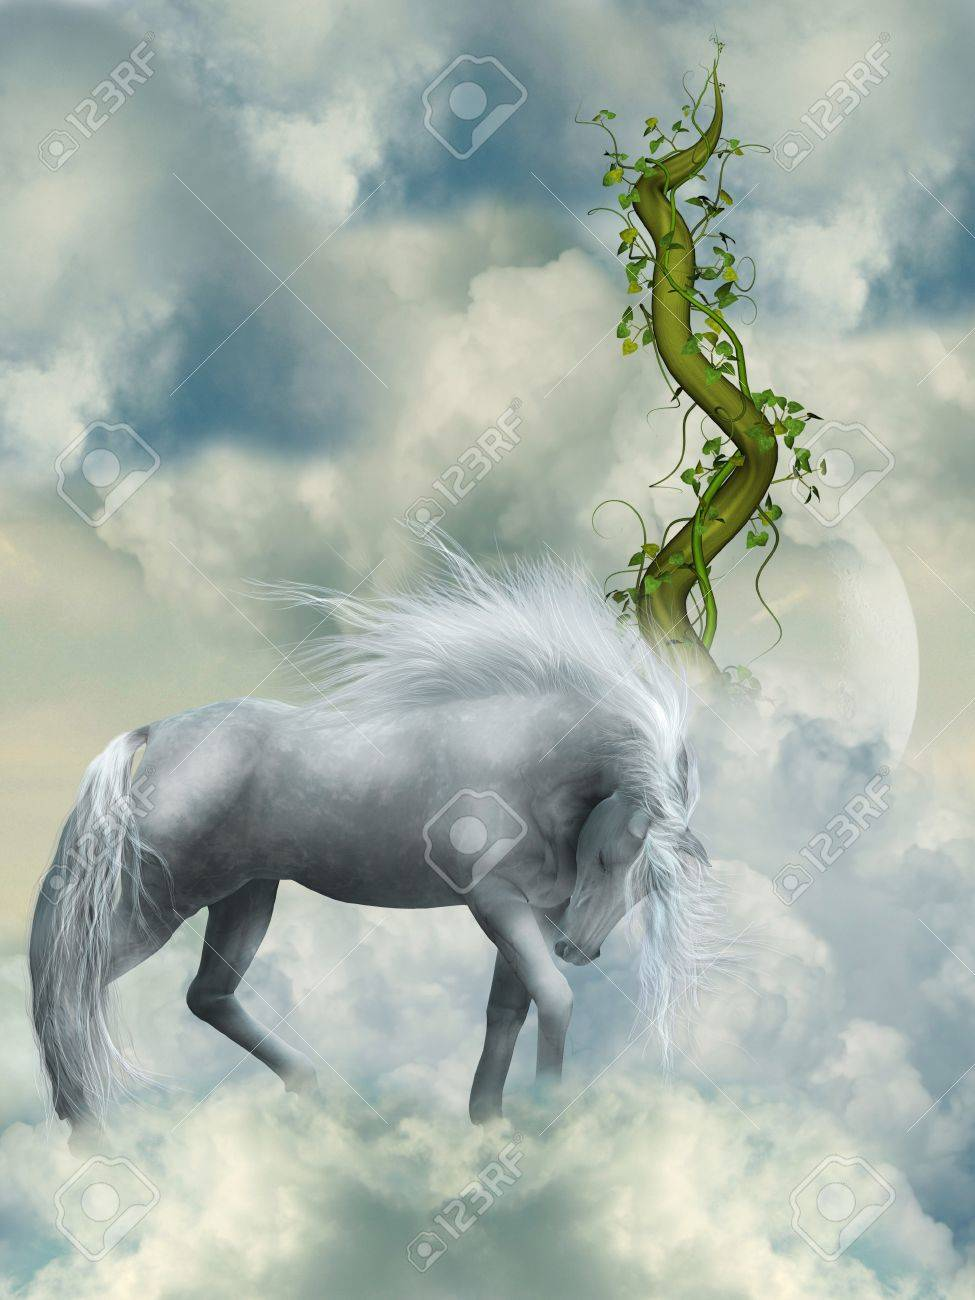 Fantasy White Horse In The Sky With Green Branch Stock Photo Picture And Royalty Free Image Image 14548228